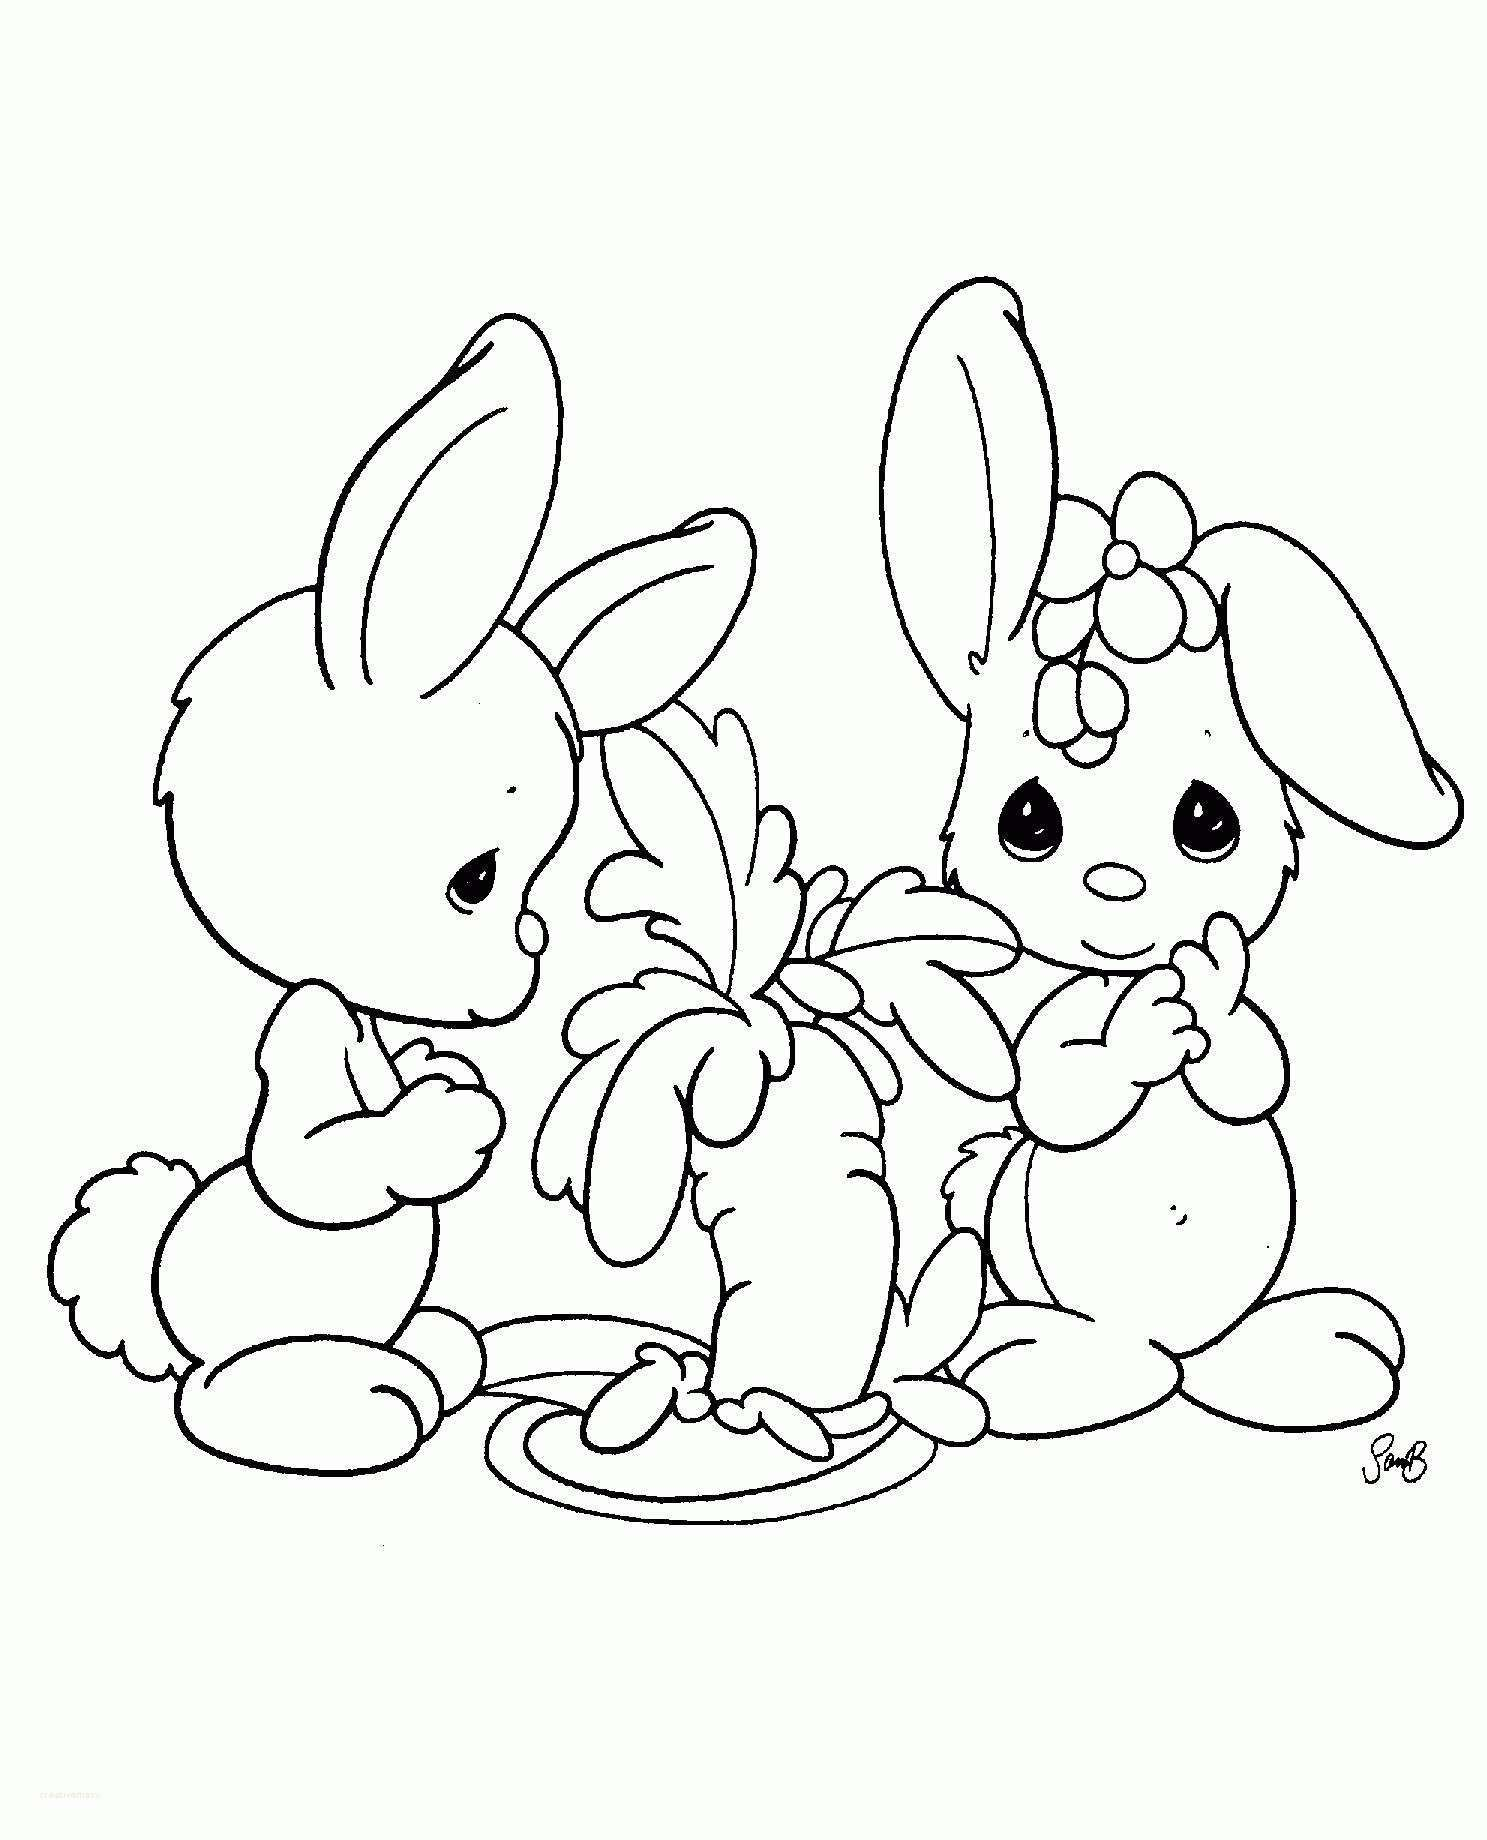 Awesome 15 Cute Easter Bunny Coloring Pages Printable Precious